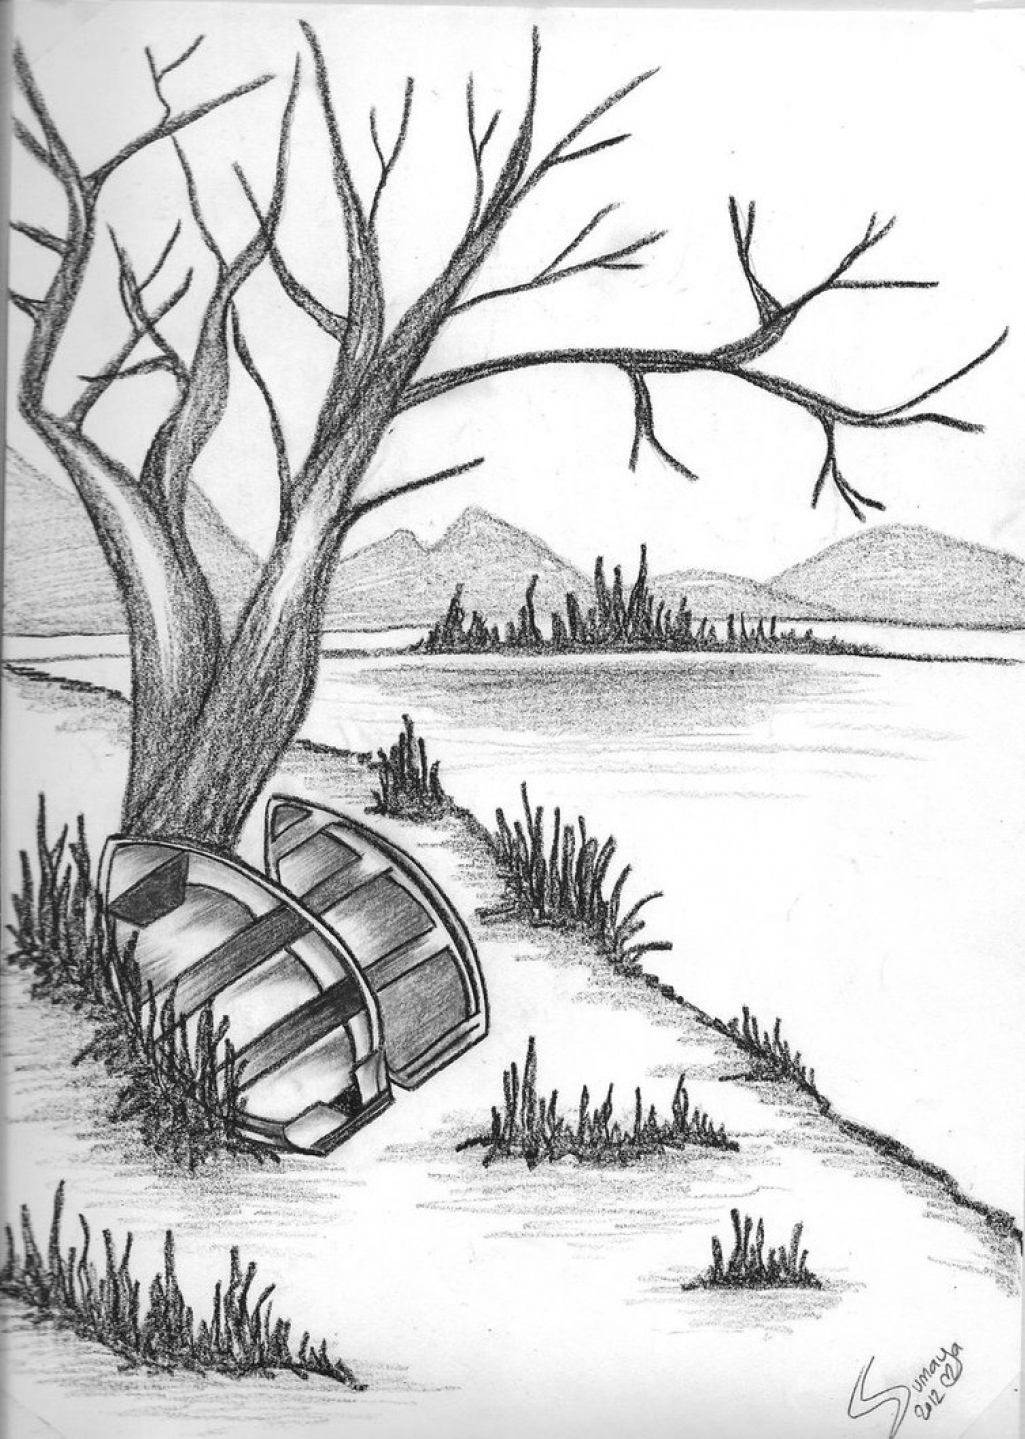 1025x1439 easy sketches of nature nature of pencil drawing simple pencil pencil sketches of nature